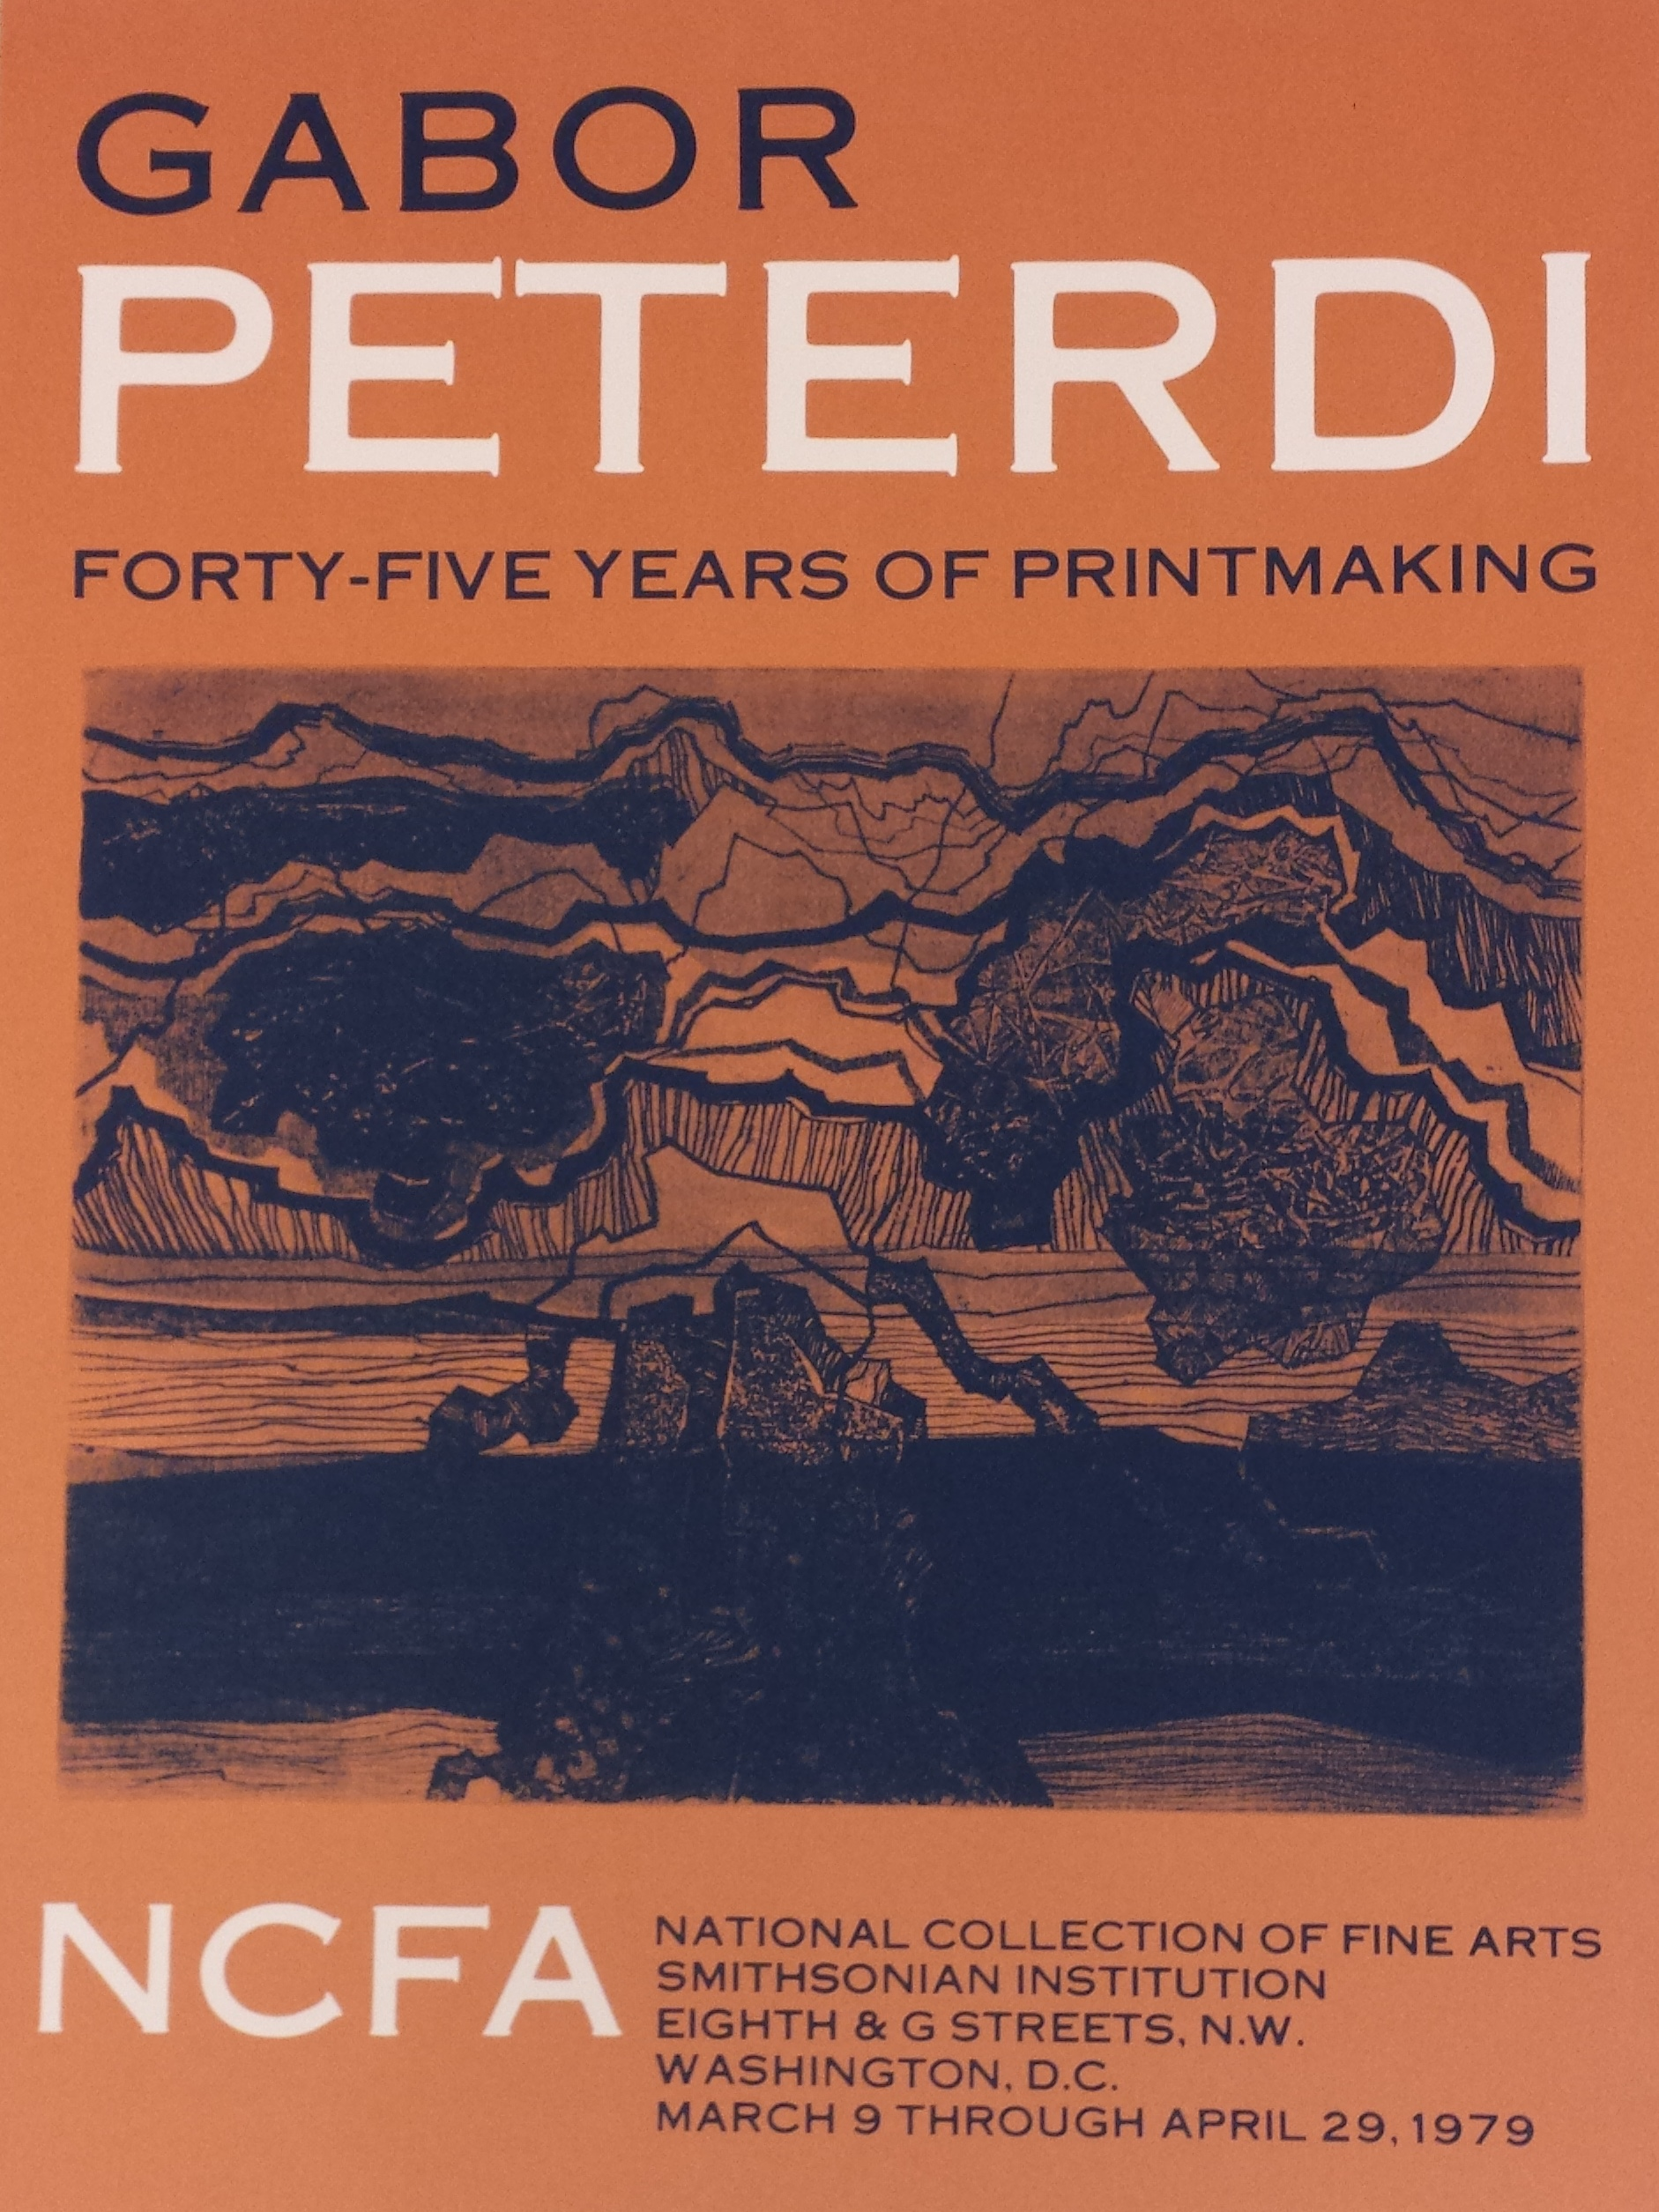 Gabor Peterdi: 45 Years of Printmaking, 1979.